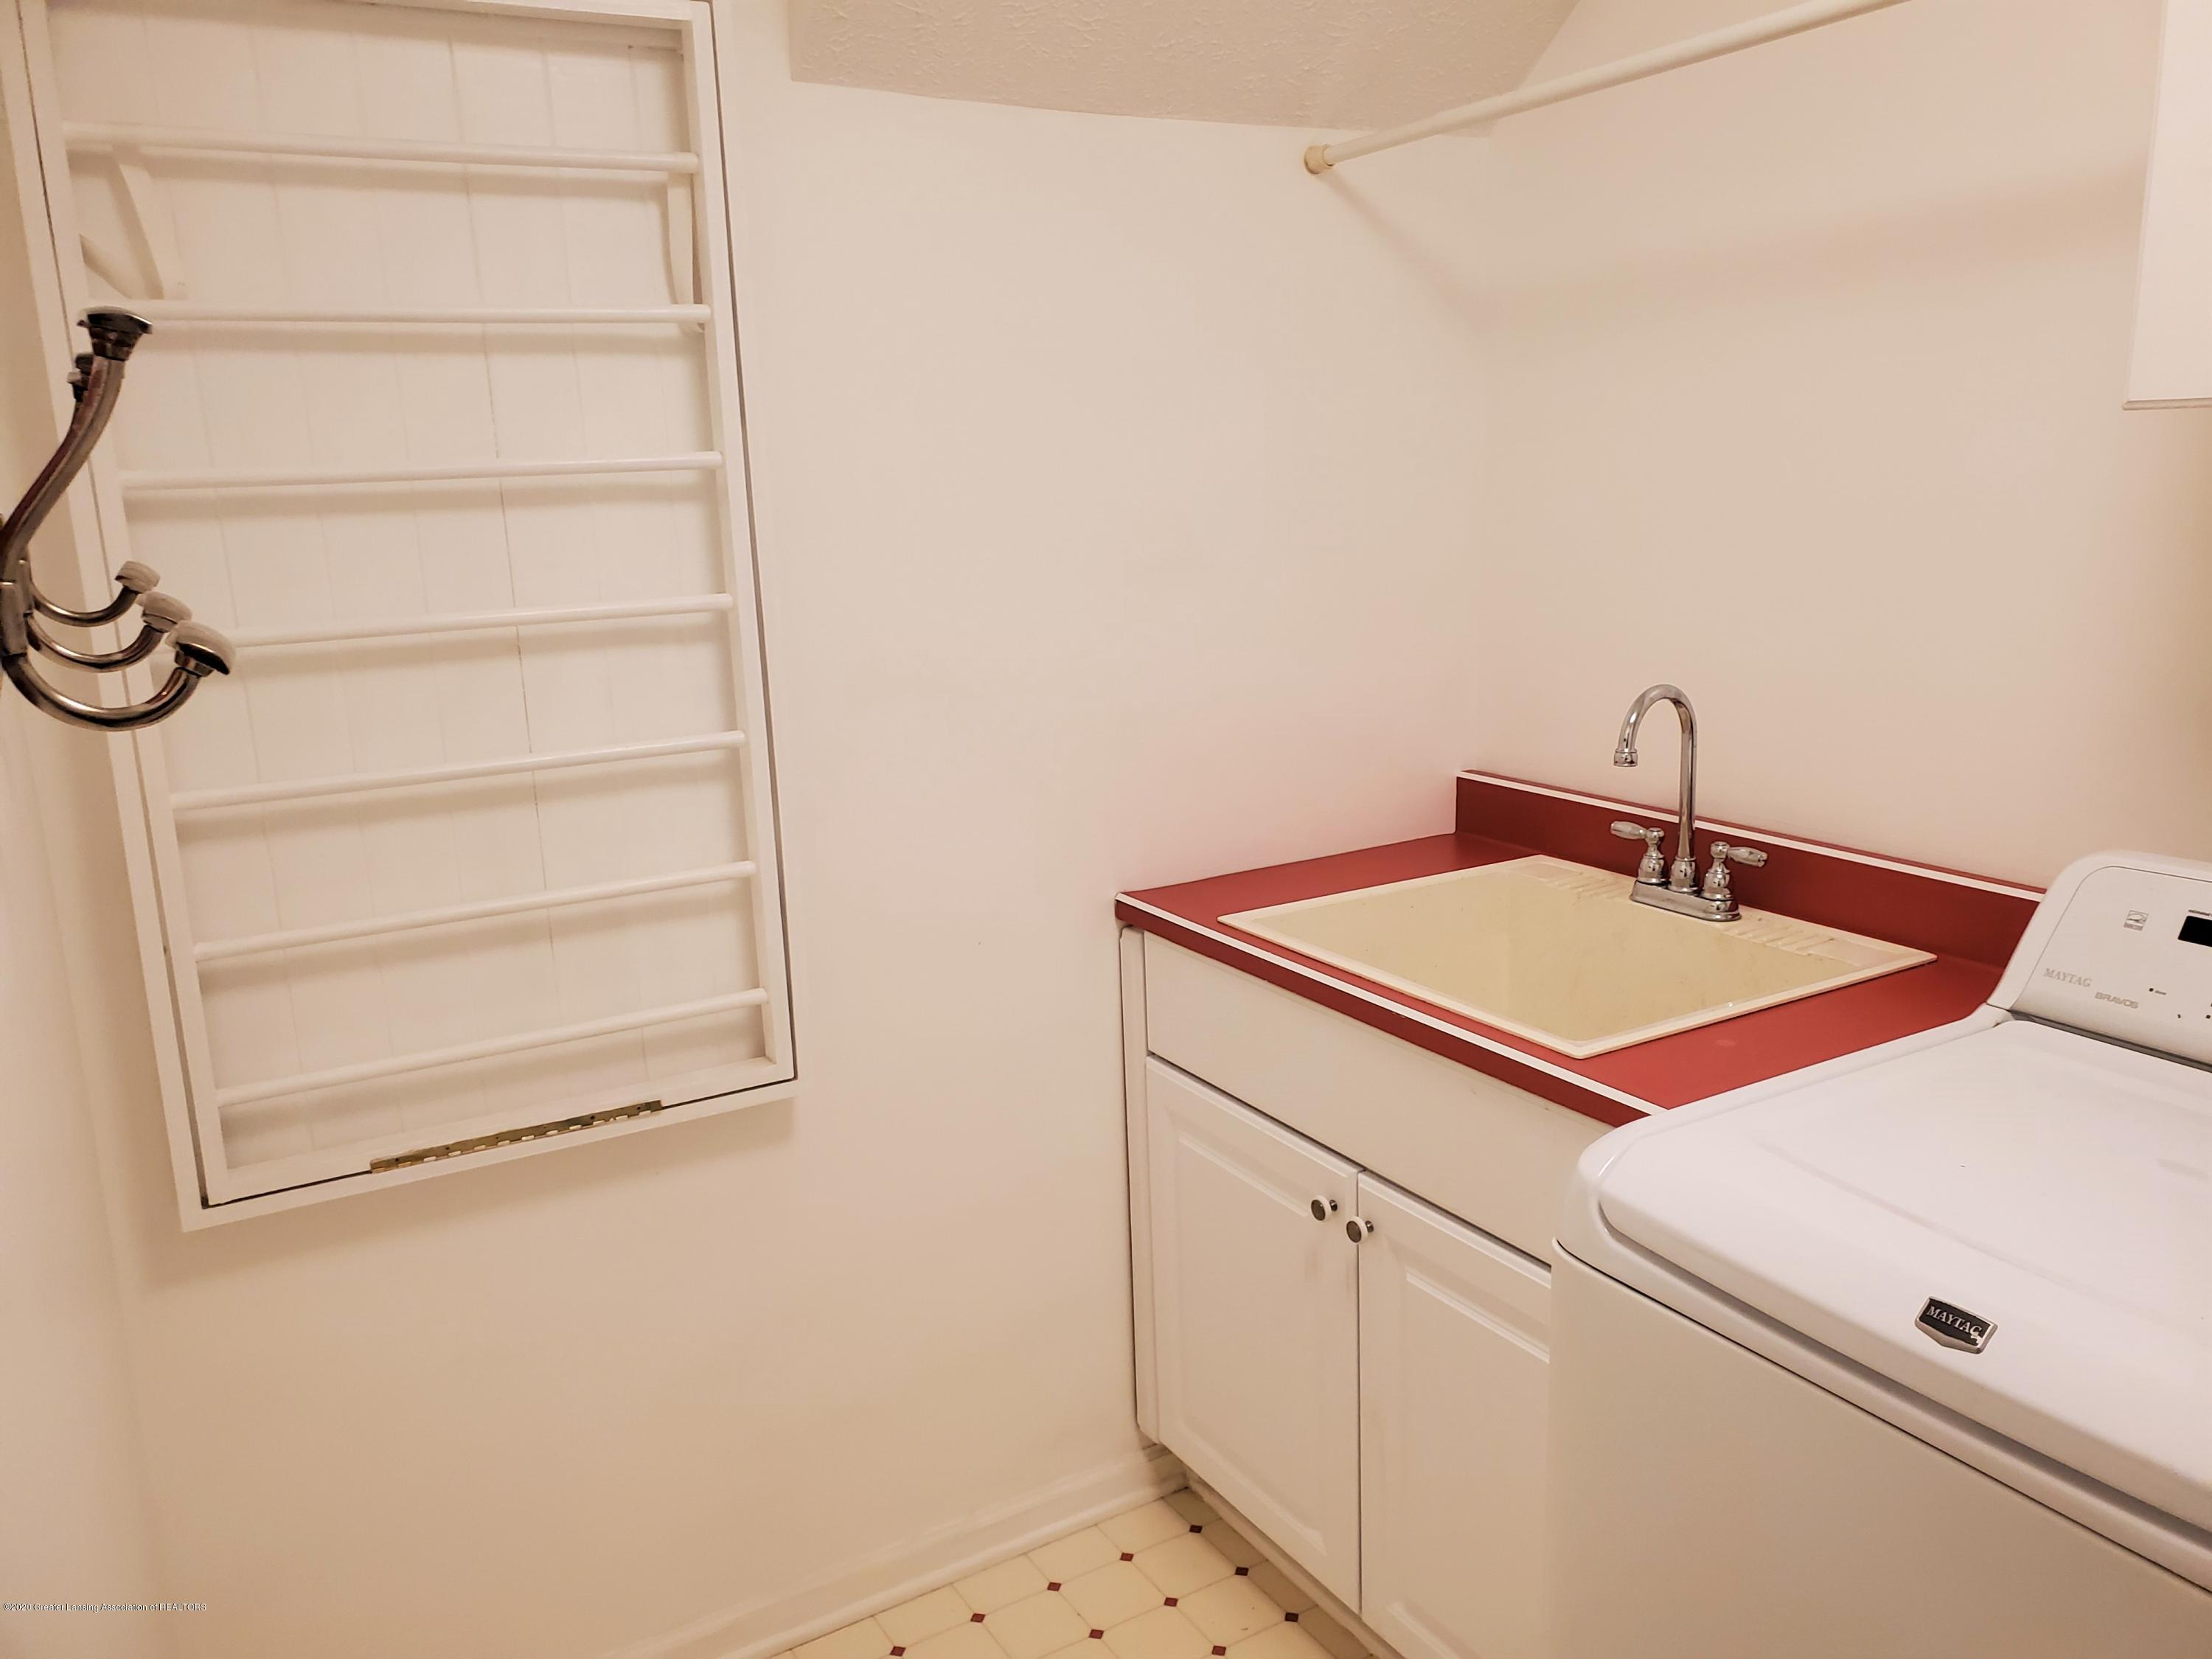 1075 Nautical Dr - Laundry Room - 22